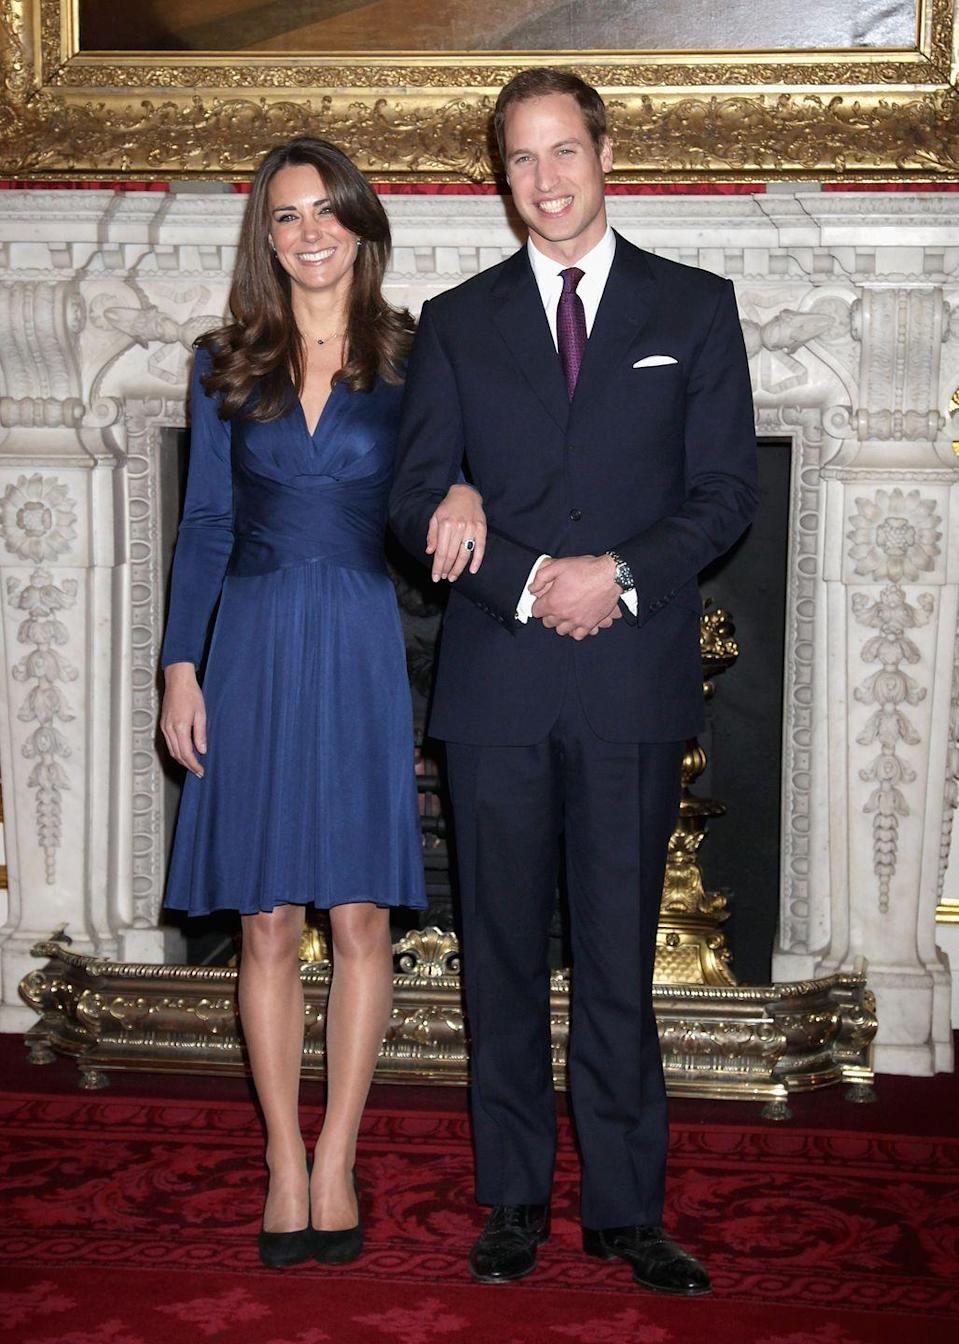 """<p><a href=""""https://www.elle.com/culture/celebrities/g22984701/kate-middleton-prince-william-relationship-timeline/?slide=7"""" rel=""""nofollow noopener"""" target=""""_blank"""" data-ylk=""""slk:After dating for more than six years"""" class=""""link rapid-noclick-resp"""">After dating for more than six years</a>, William and Kate announce their engagement in November 2010. William proposed on a safari trip in Kenya in October of the same year.</p>"""